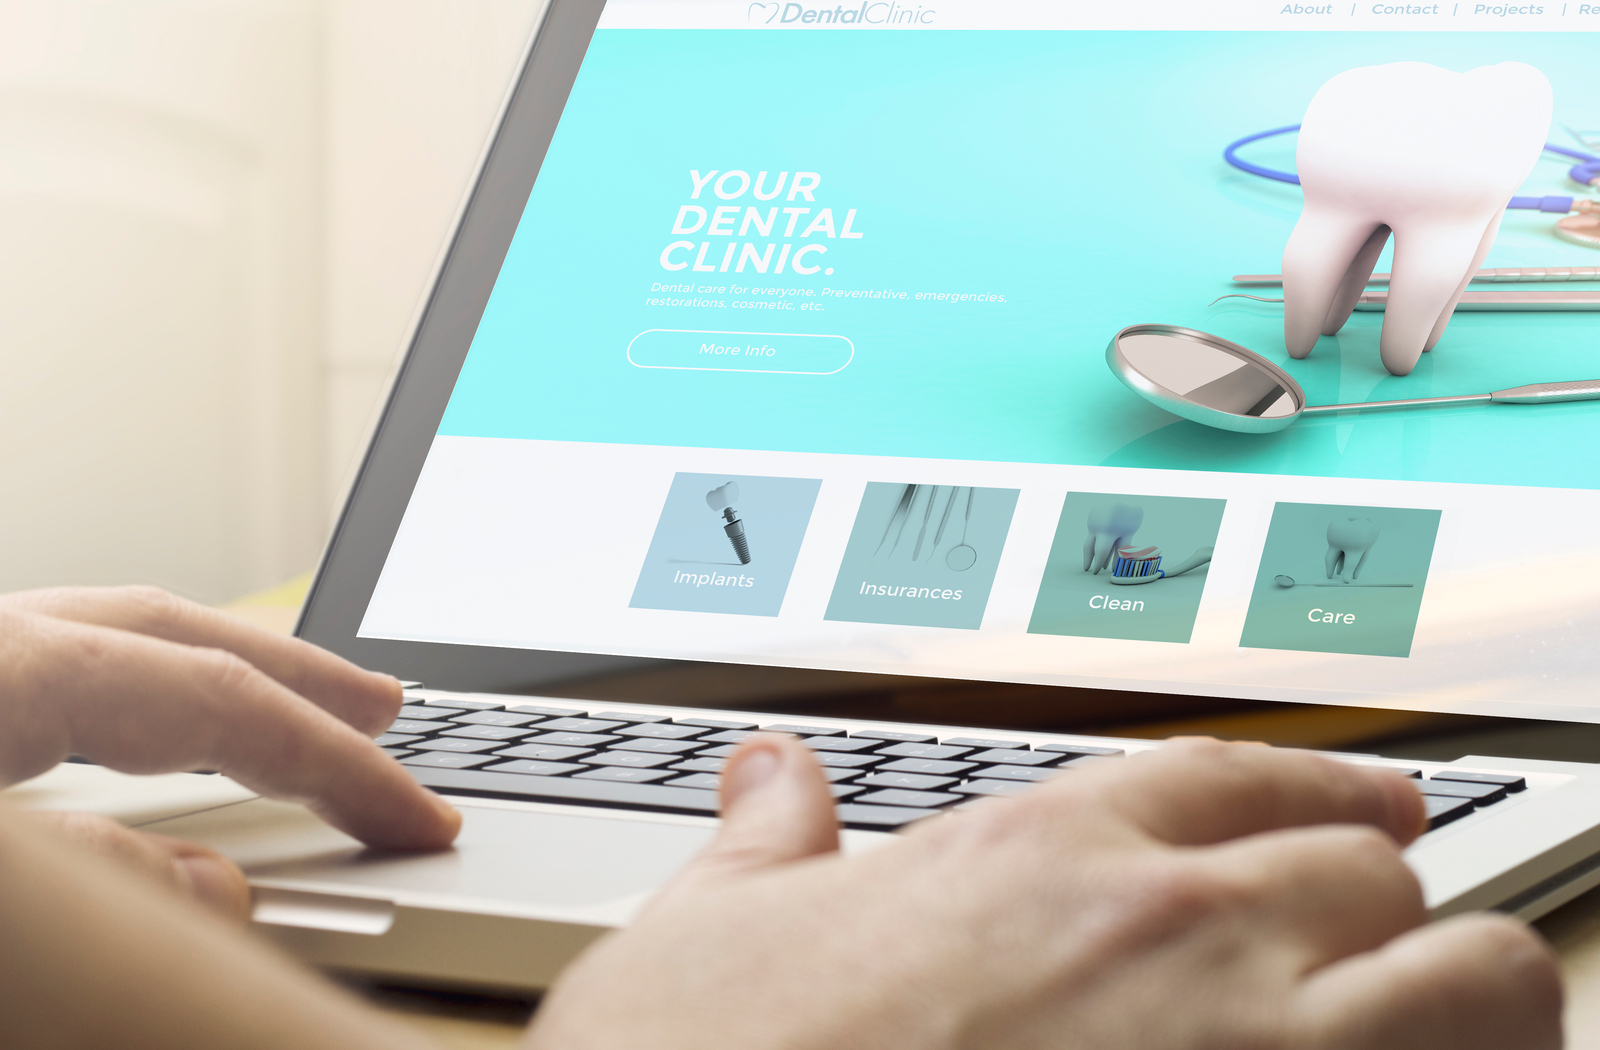 Dental professional working on their website